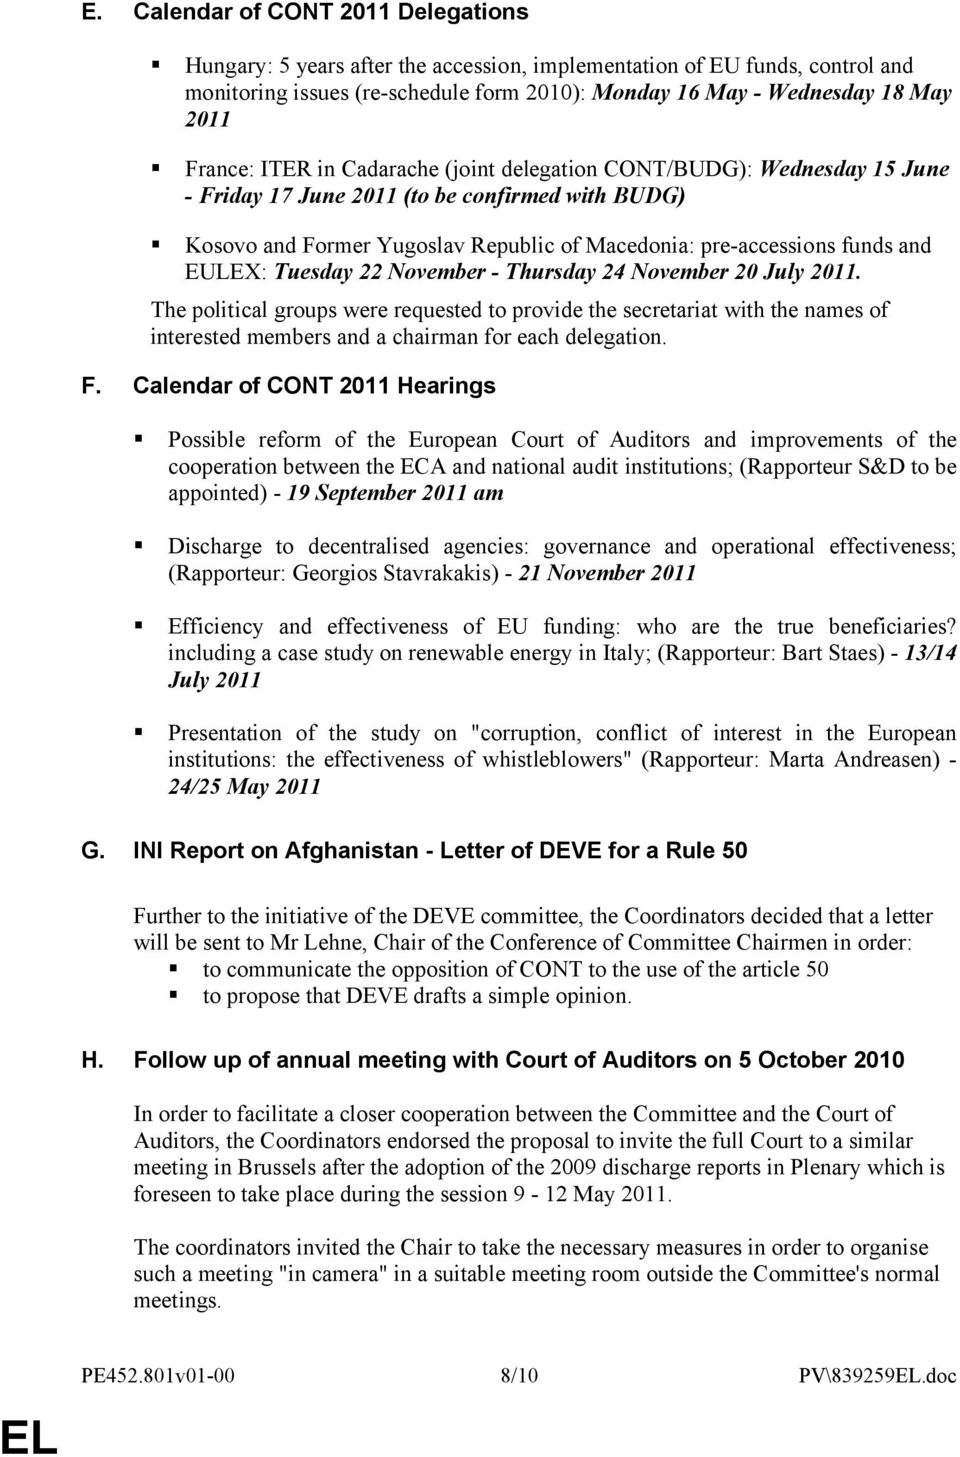 EULEX: Tuesday 22 November - Thursday 24 November 20 July 2011. The political groups were requested to provide the secretariat with the names of interested members and a chairman for each delegation.